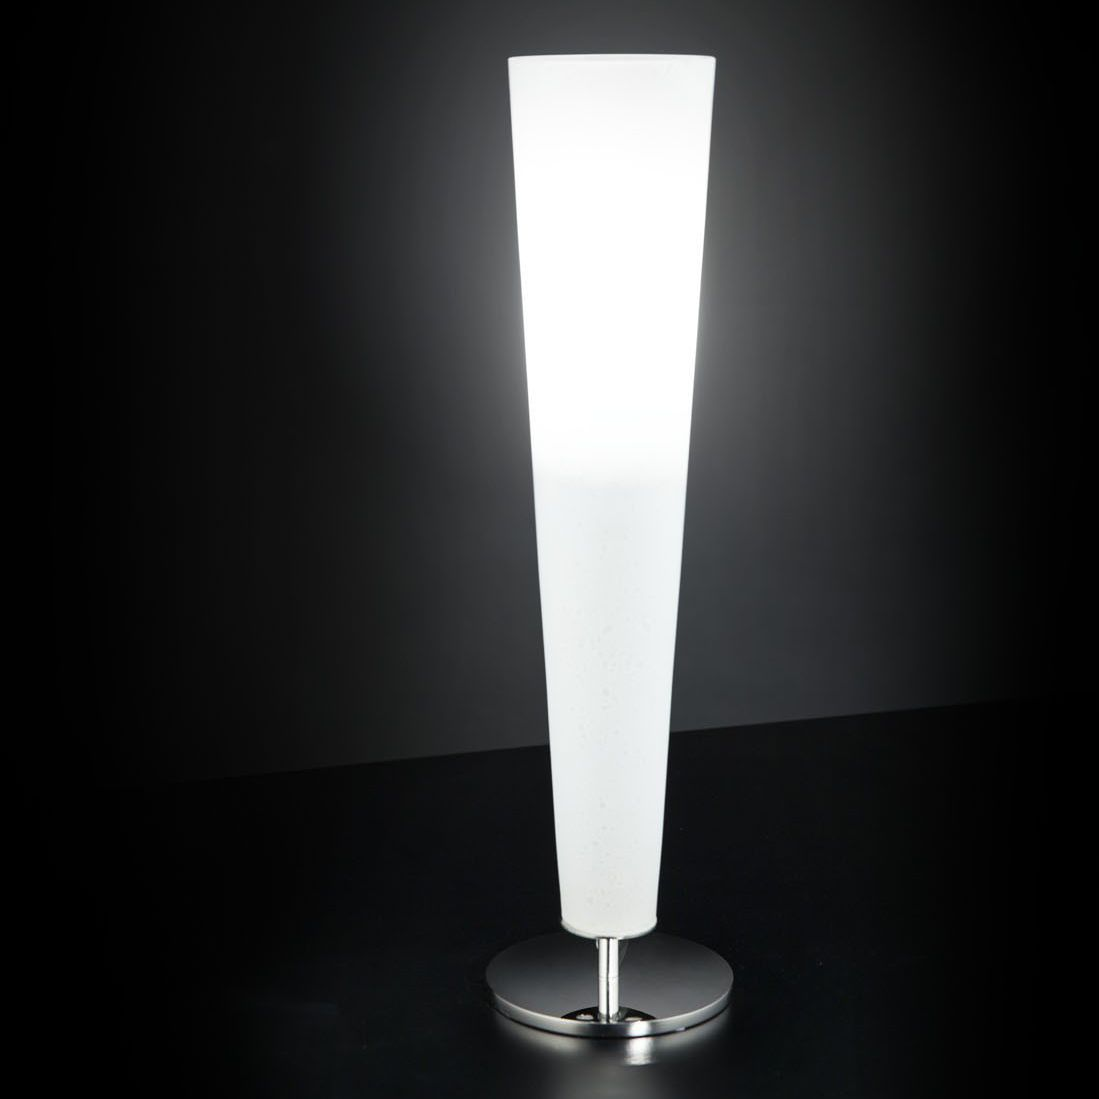 Genial Moderne Tischlampen Ideen Von Table Lamp / Contemporary / Glass -